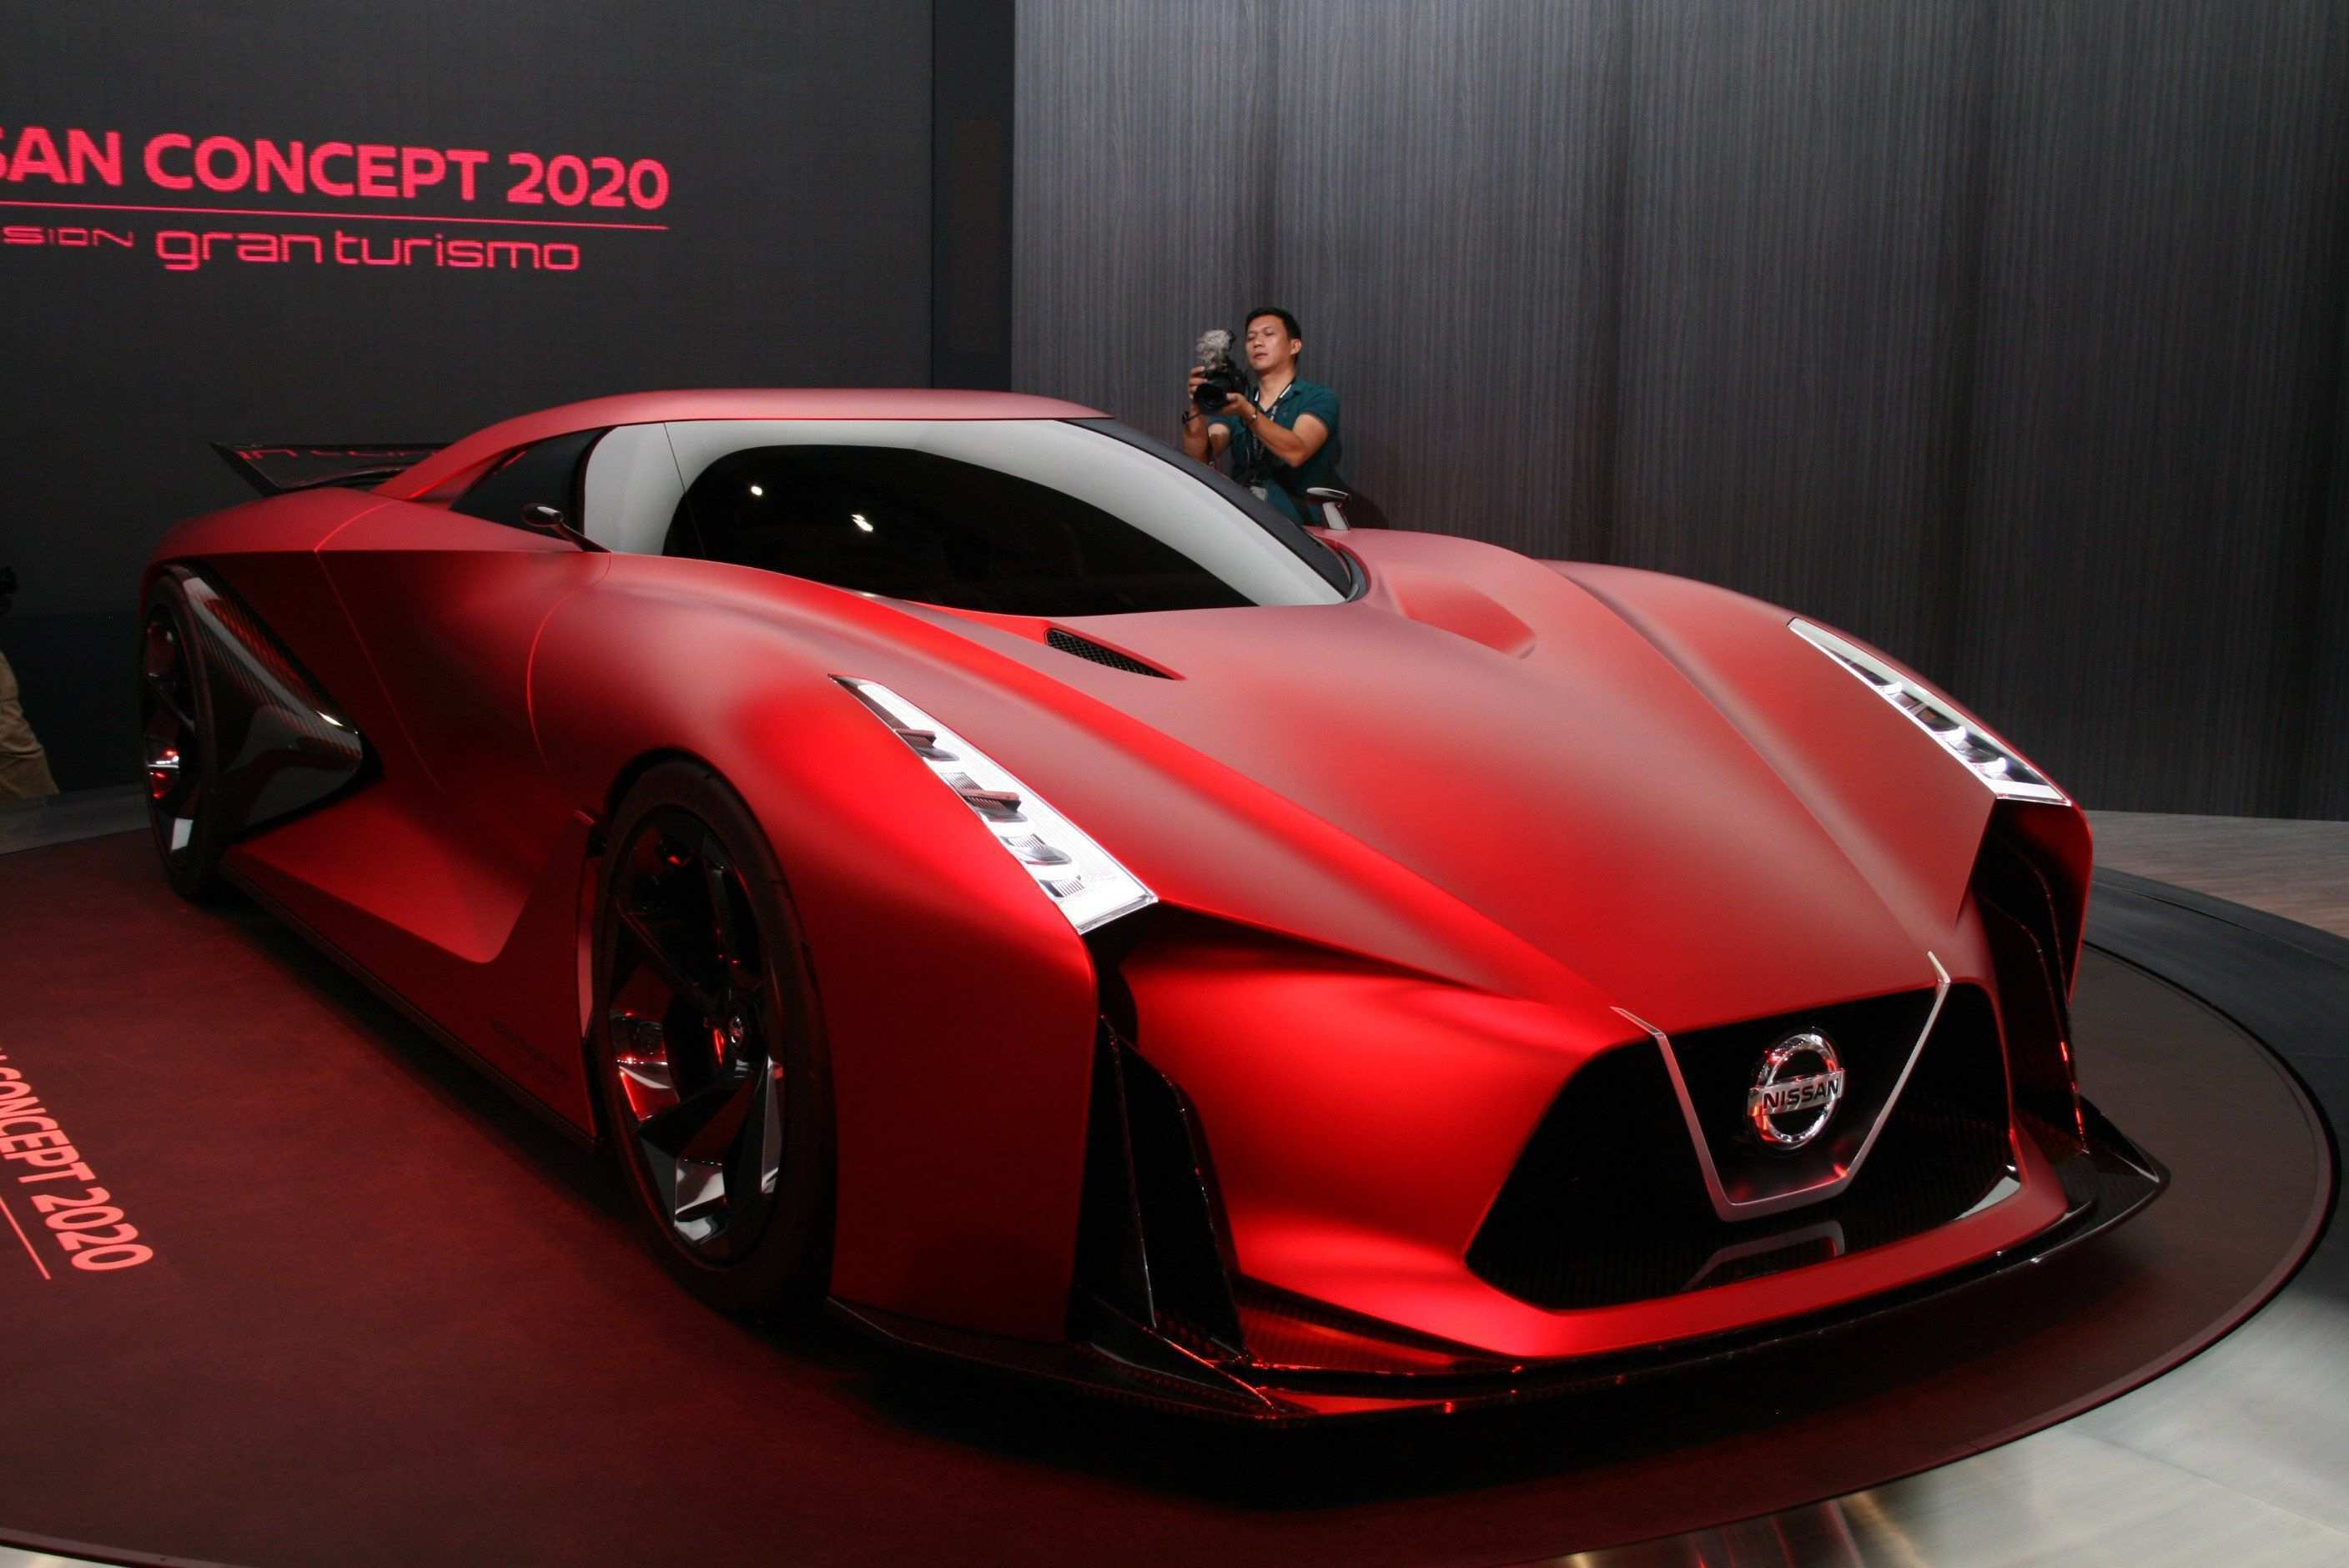 18 New 2020 Nissan Gtr Exterior Images by 2020 Nissan Gtr Exterior